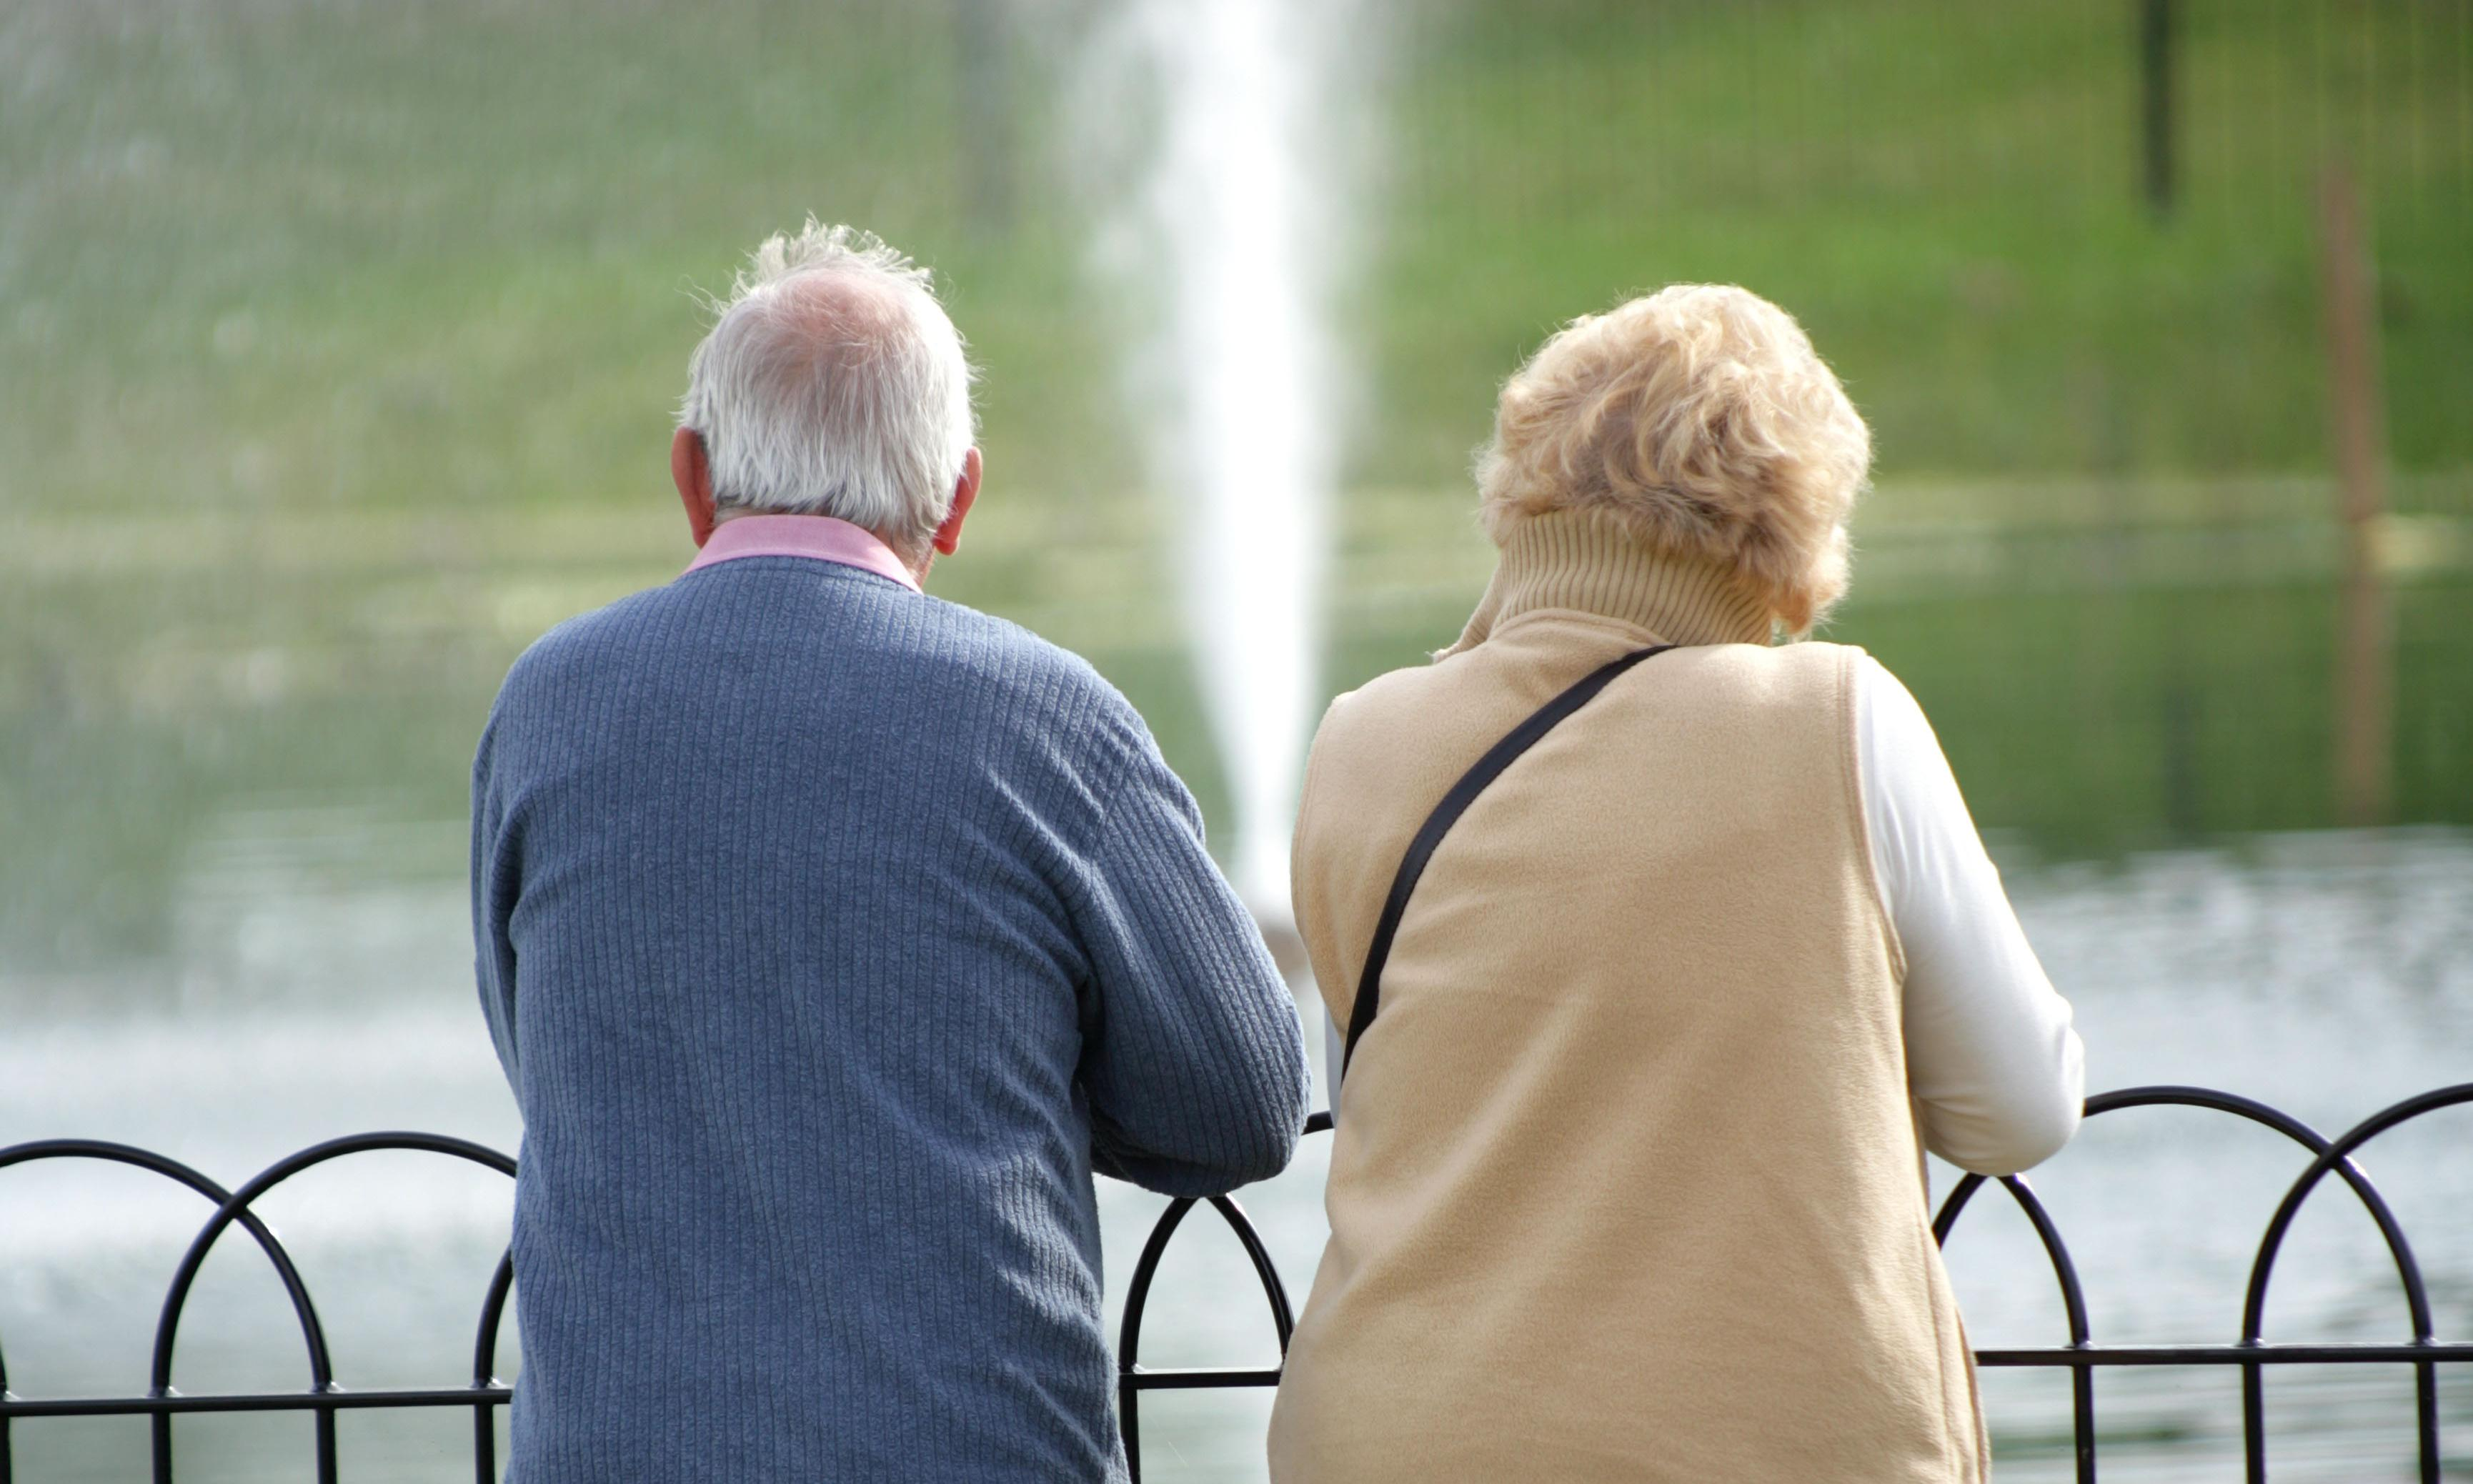 Some parts of UK ageing twice as fast as others, new research finds